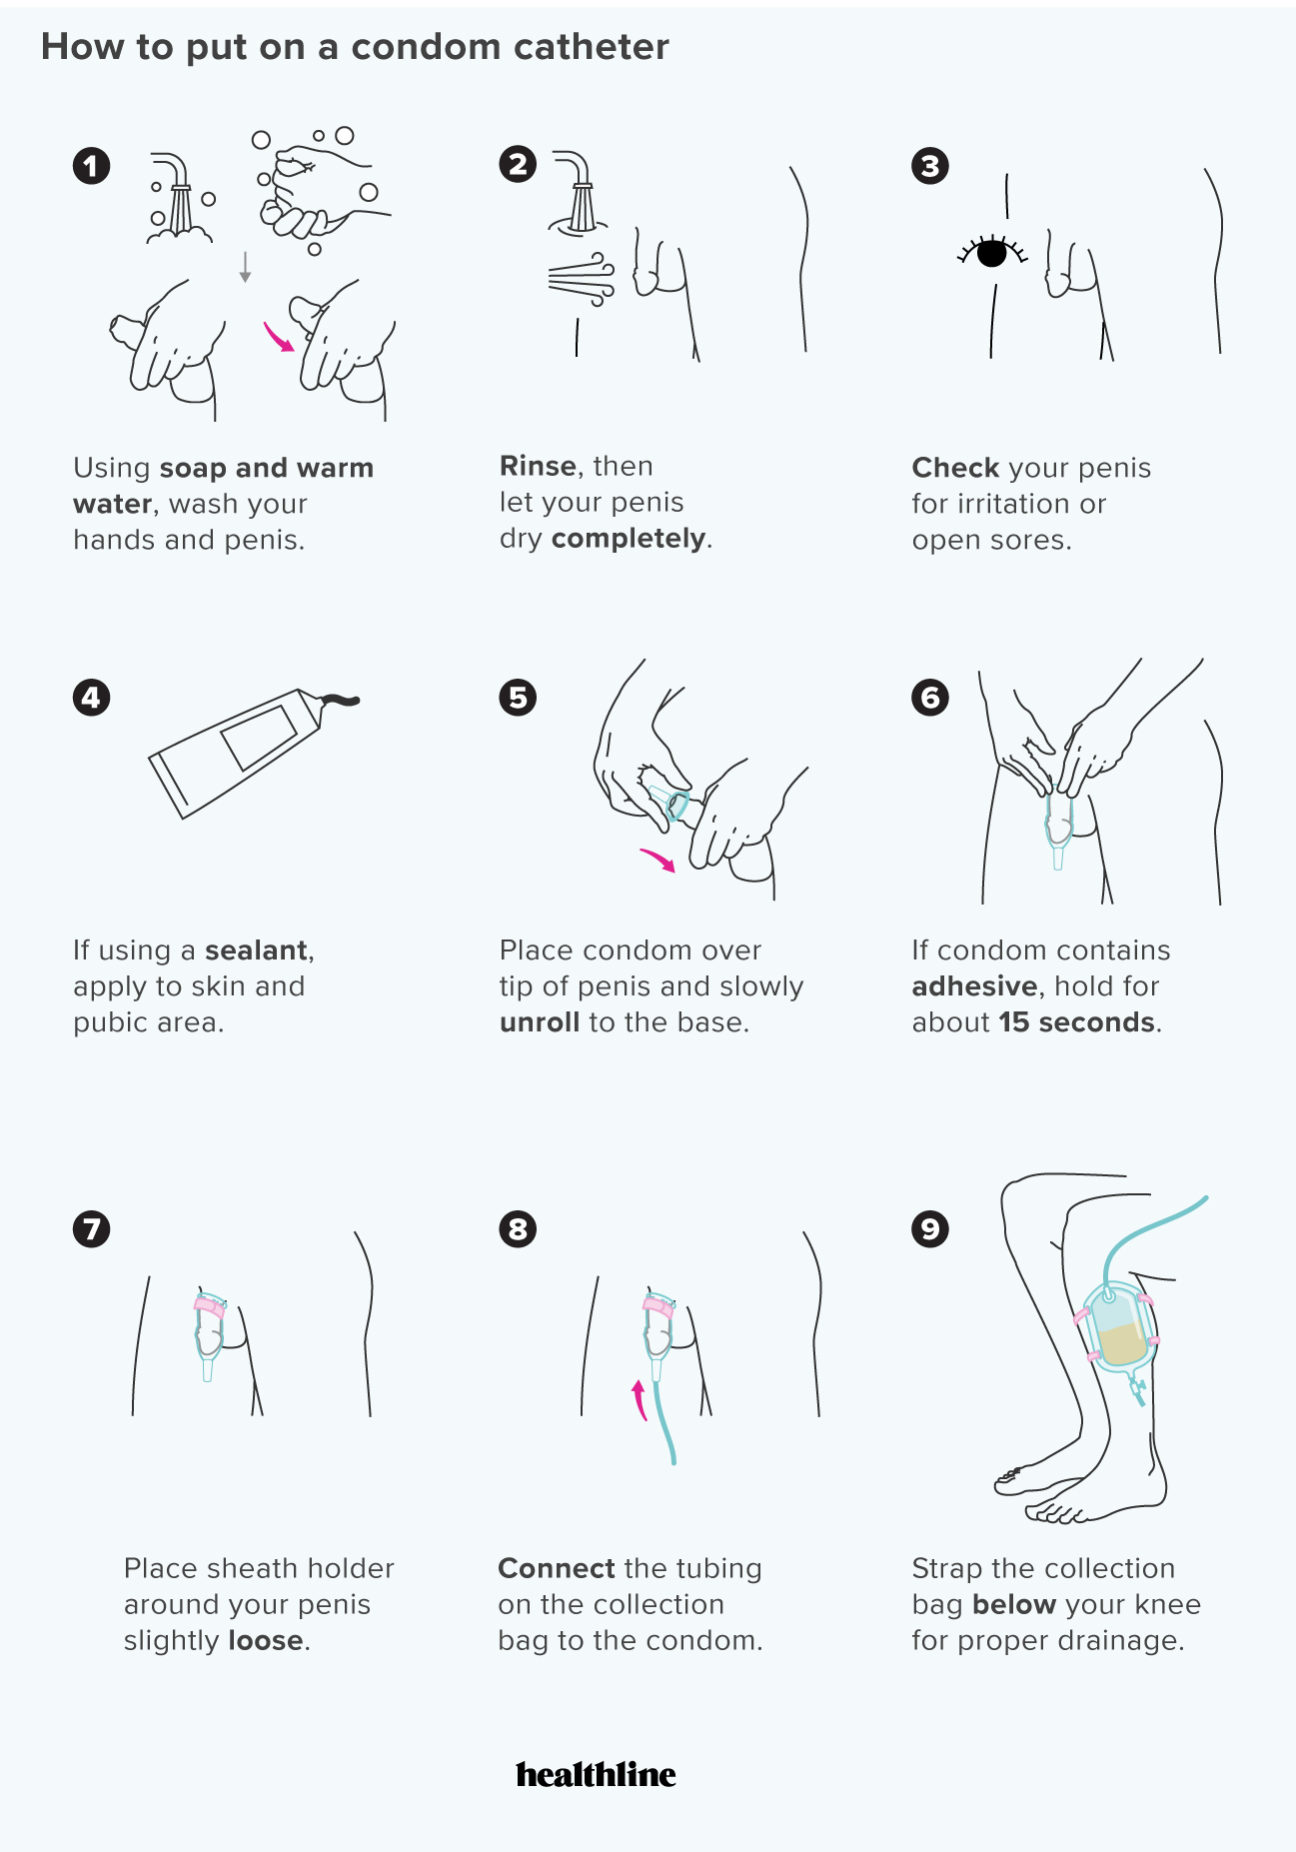 How to put on a condom illustrations